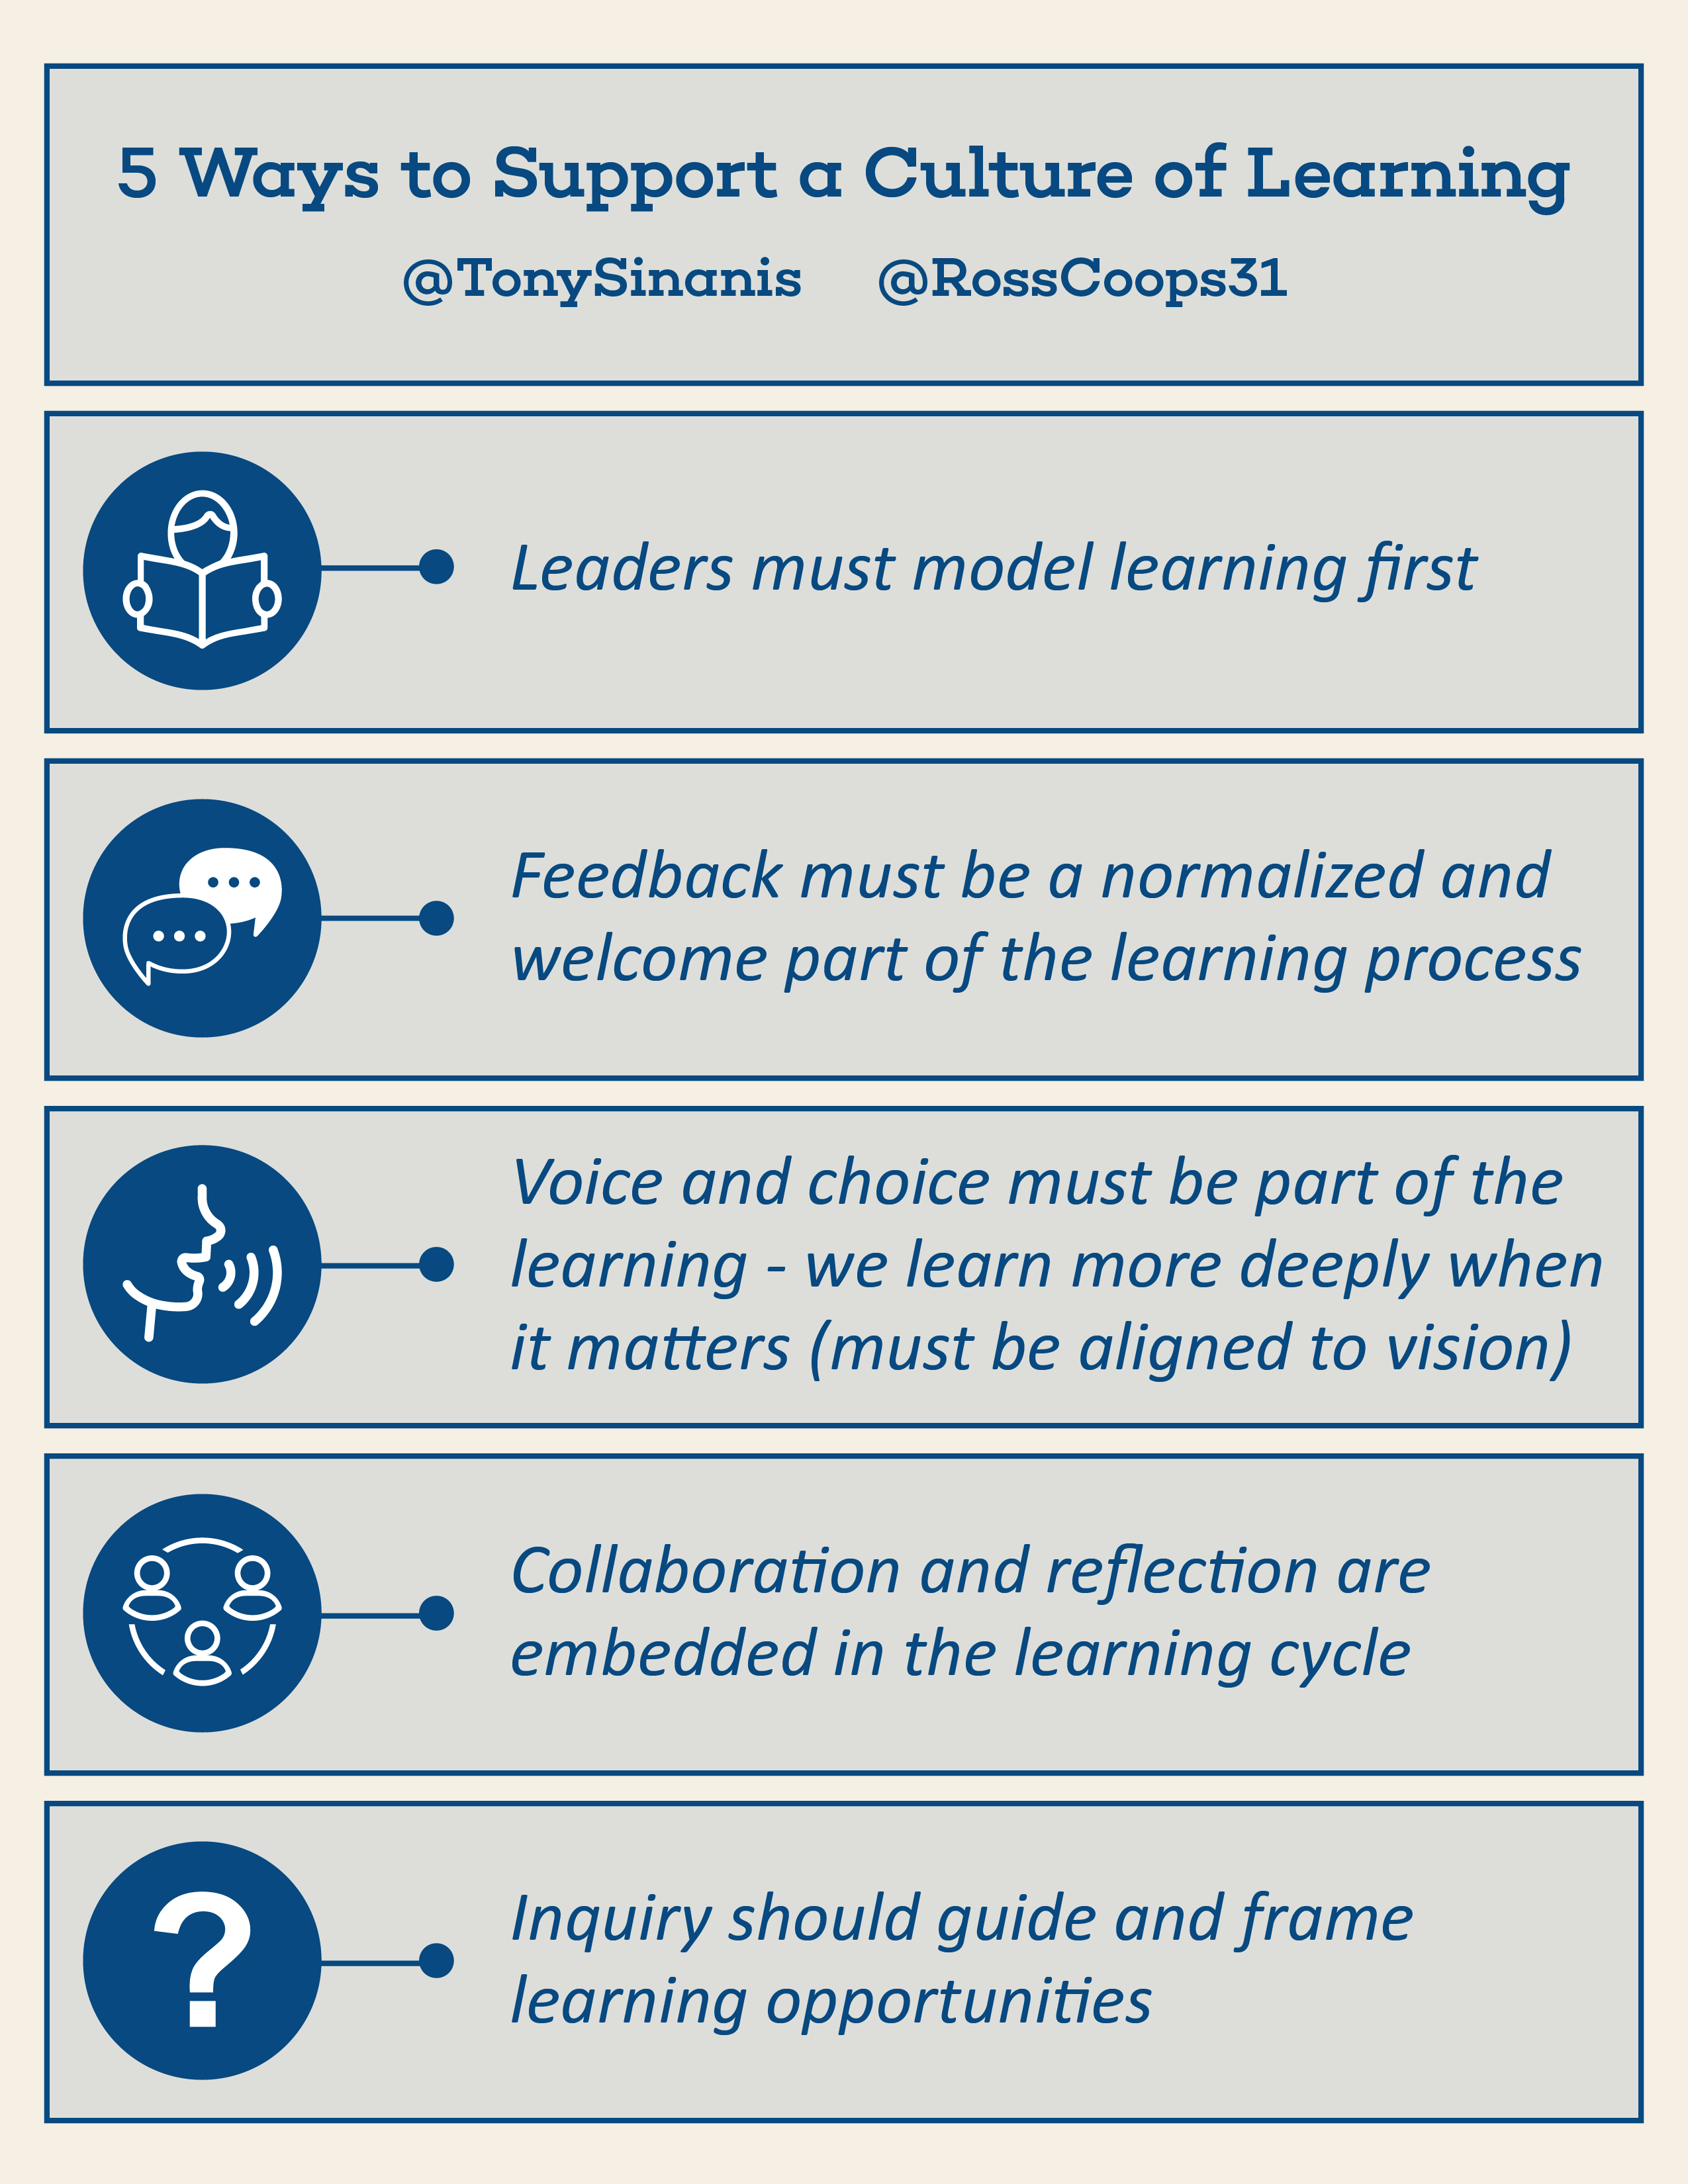 5 Ways to Support a Culture of Learning - Cooper on Curriculum